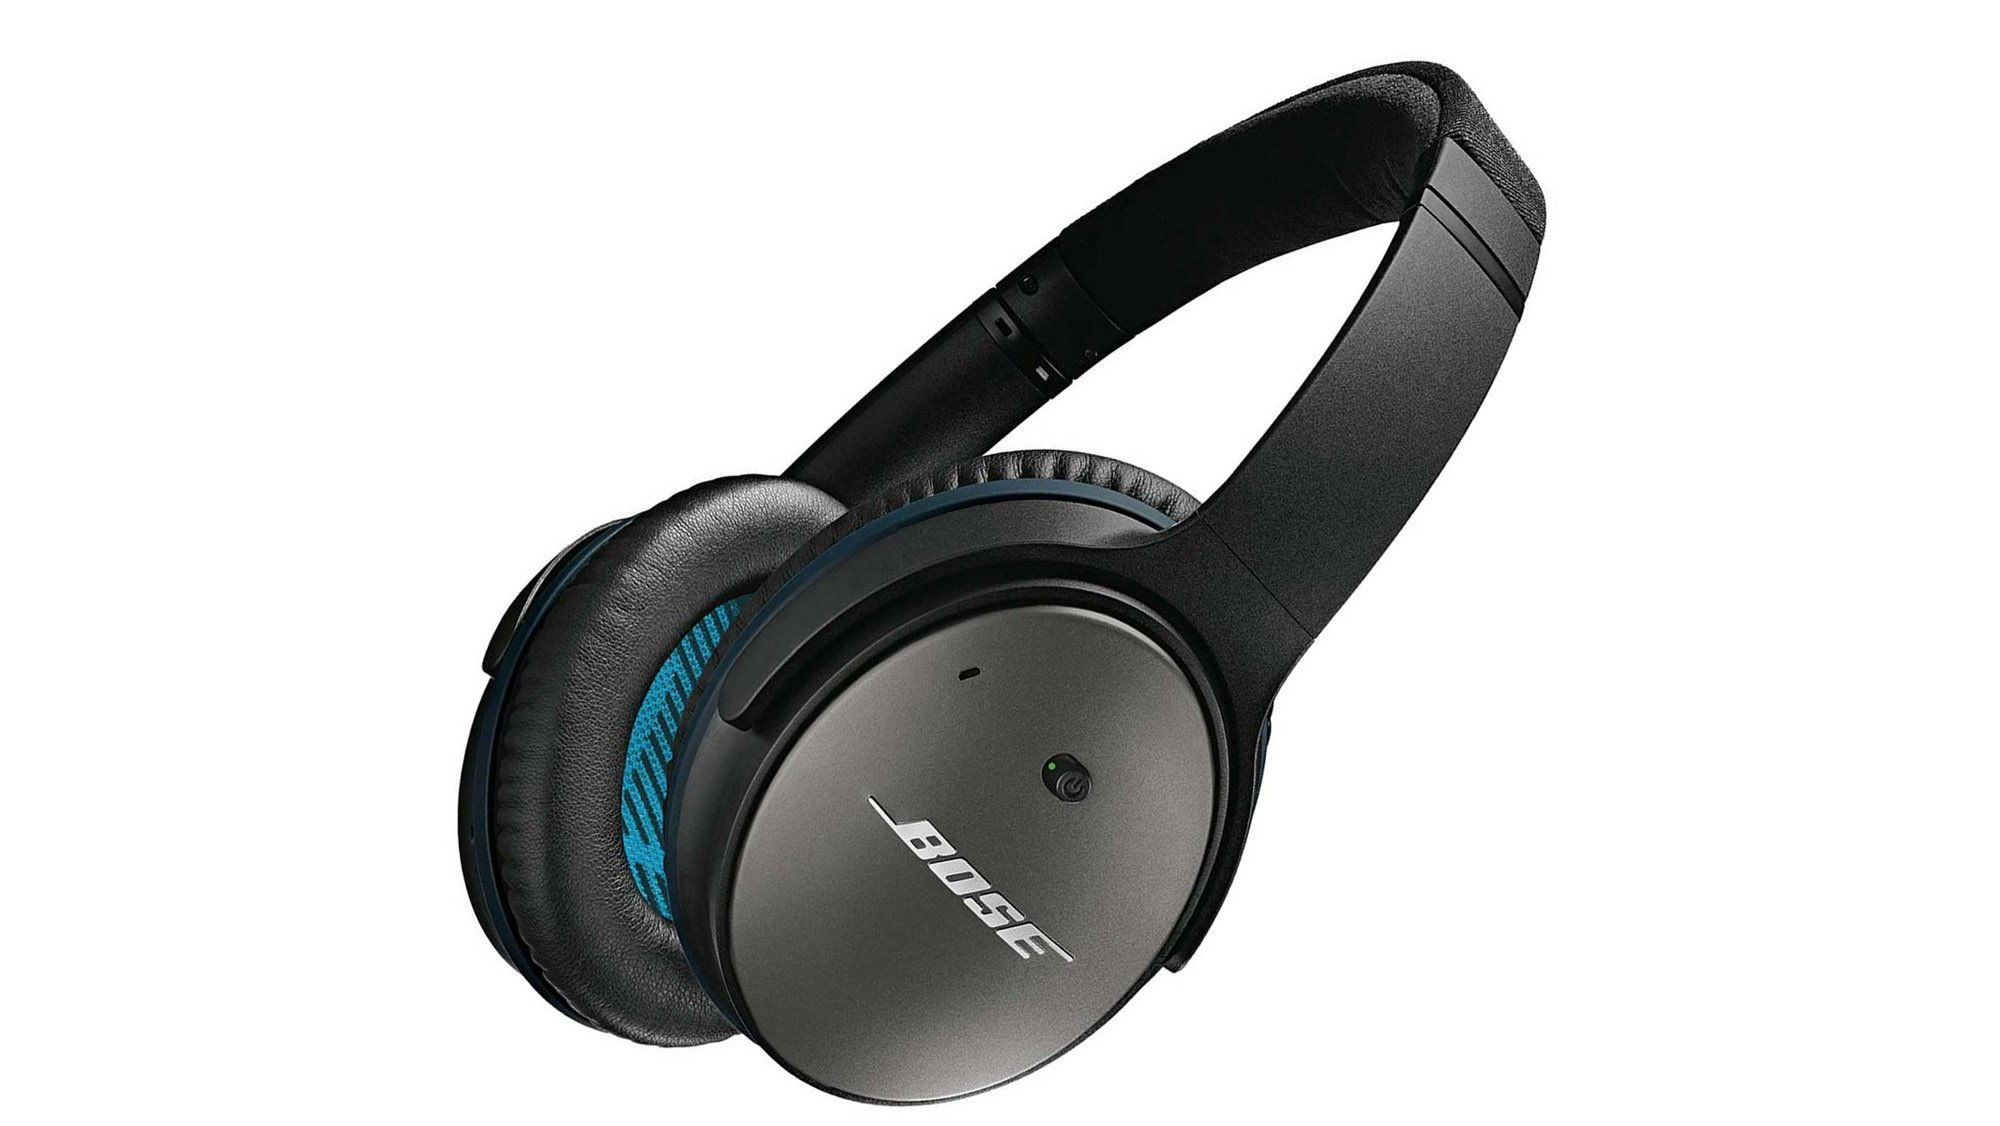 93e2ab6681c Much like the QC35s, the original Bose QuietComfort 25 are one of the most  popular ANC headphones on the market. Their ability to block out ambient  noise is ...